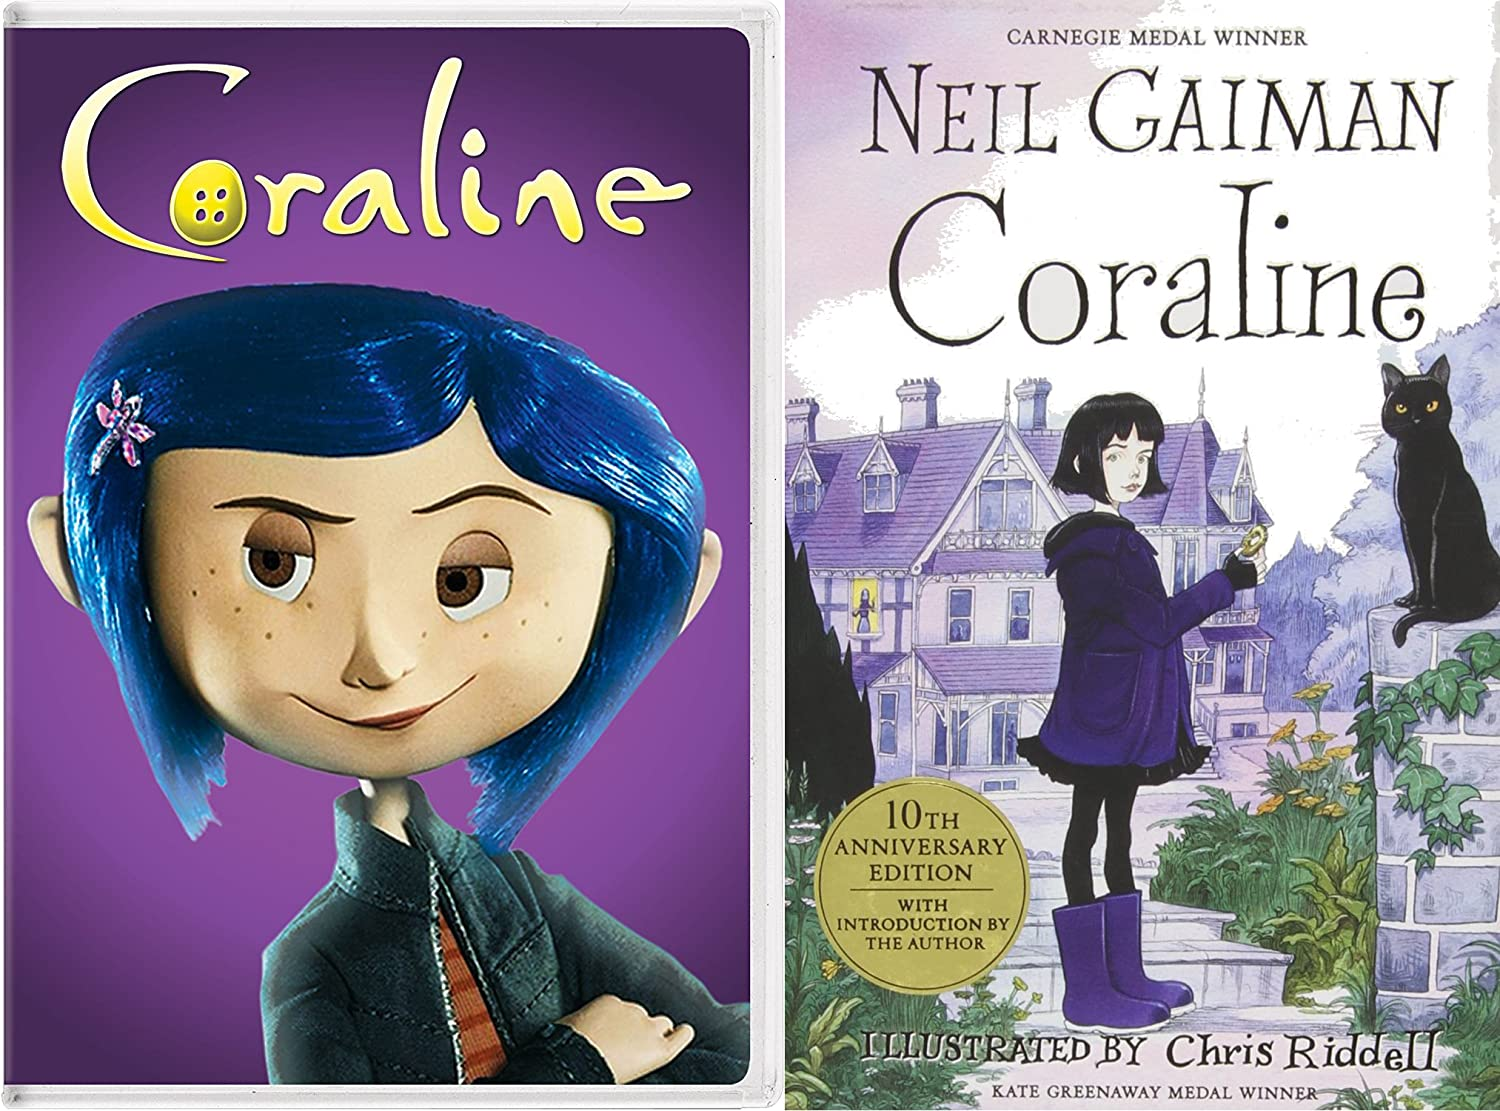 Amazon Com Coraline Movie Book Bundle Coraline Dvd And 10th Anniversary Hardcover Book By Neil Gaiman Dakota Fanning Teri Hatcher Leslie Mann Neil Gaiman Henry Selik Movies Tv